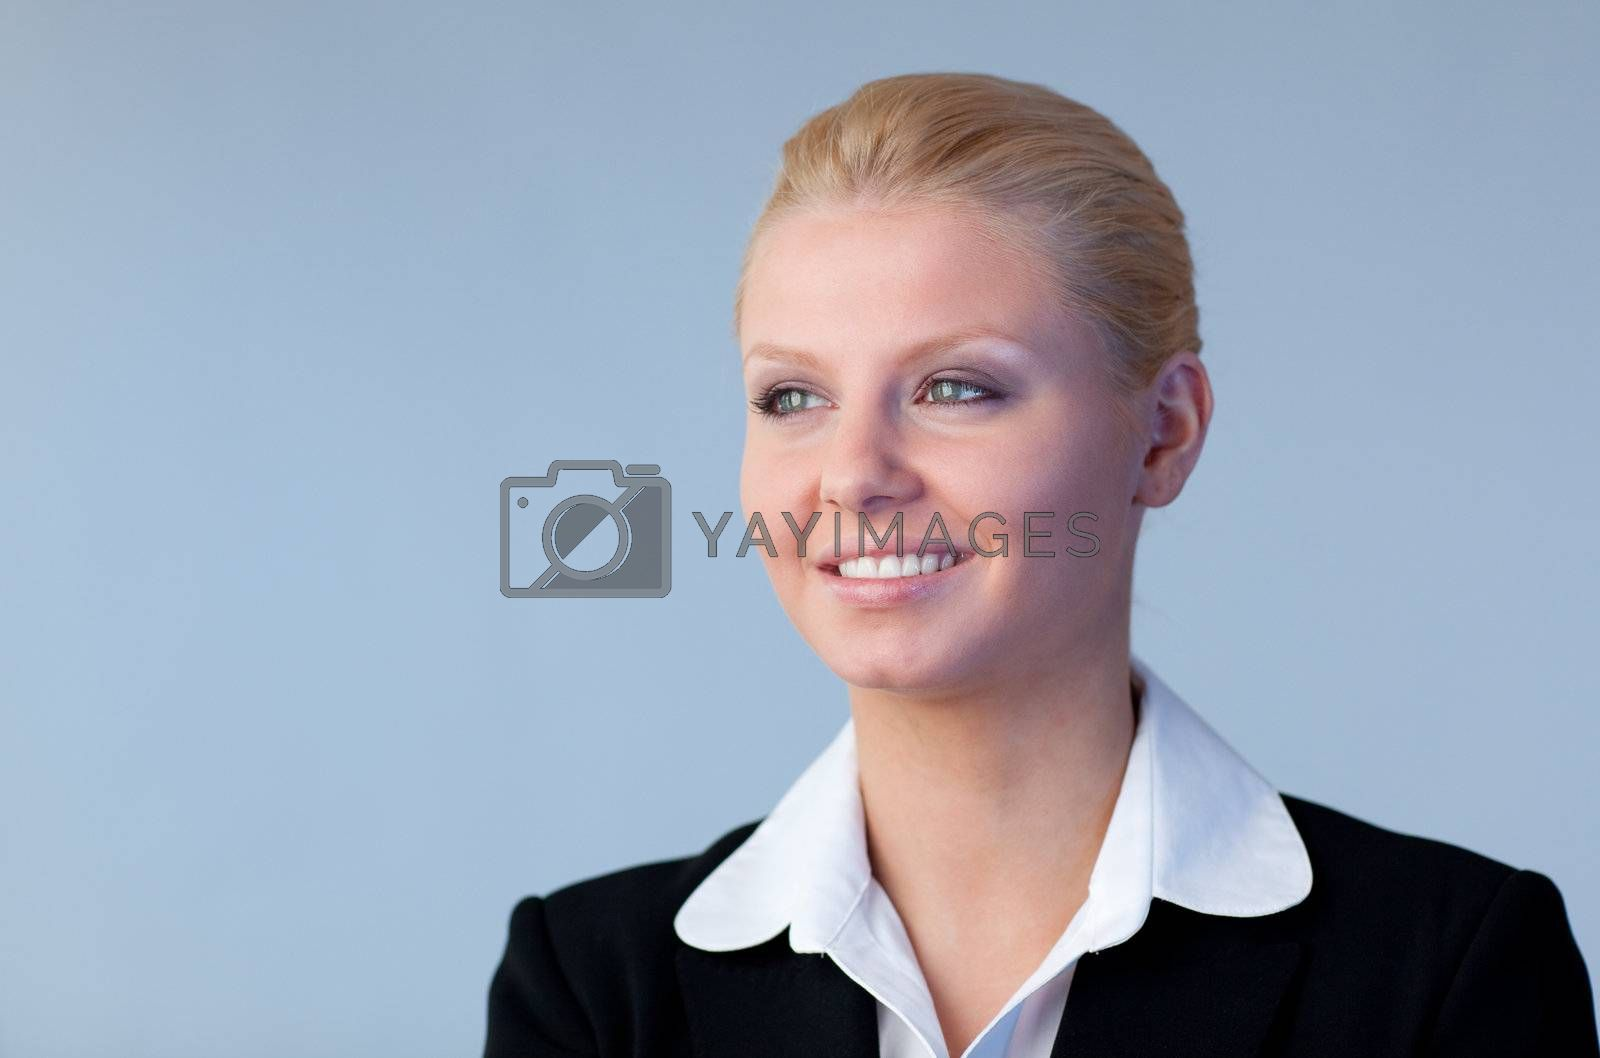 Confident businesswoman with copyspace included